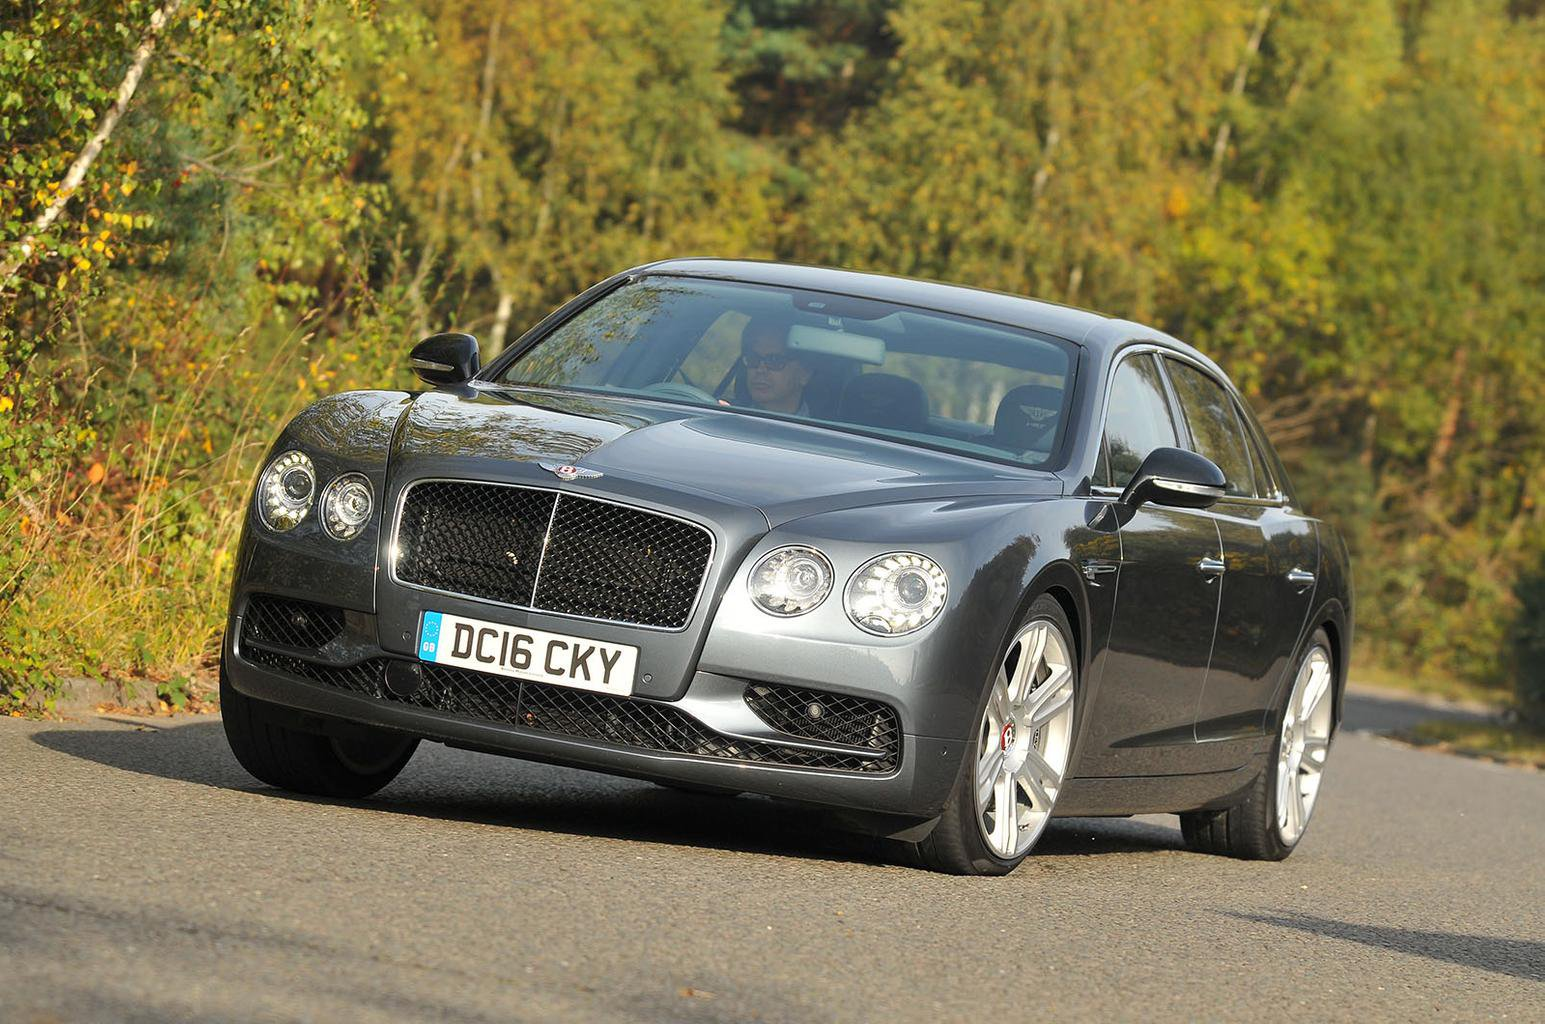 08. Bentley Mulsanne